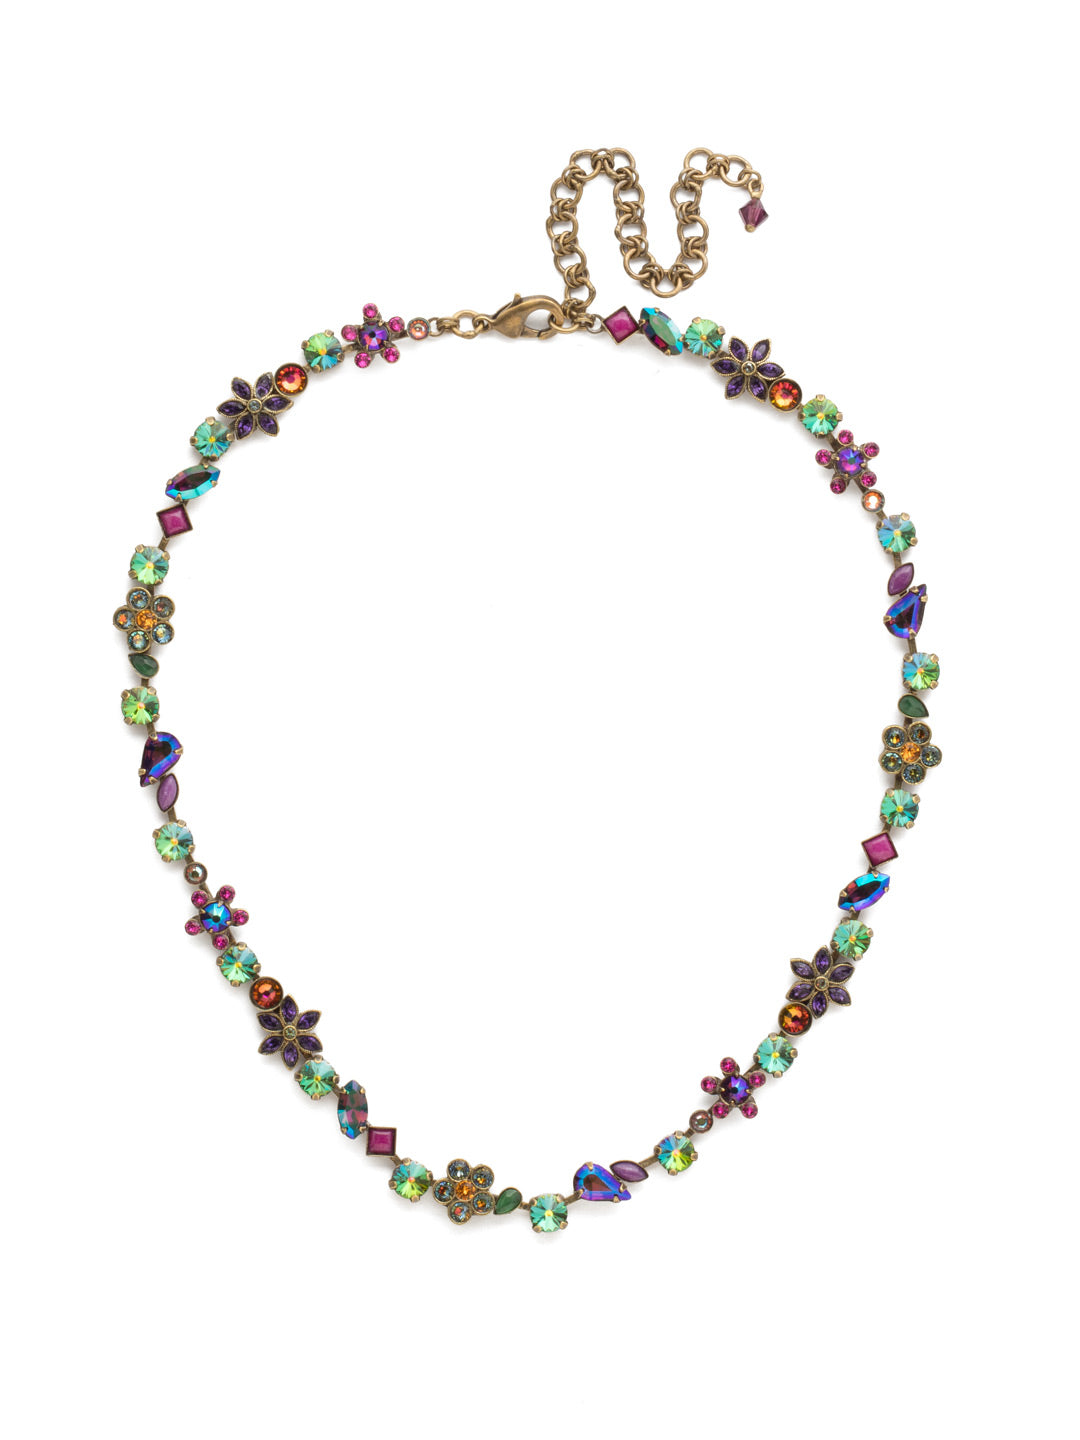 Classic Crystal and Opaque Stone Floral Tennis Necklace - NBL12AGVO